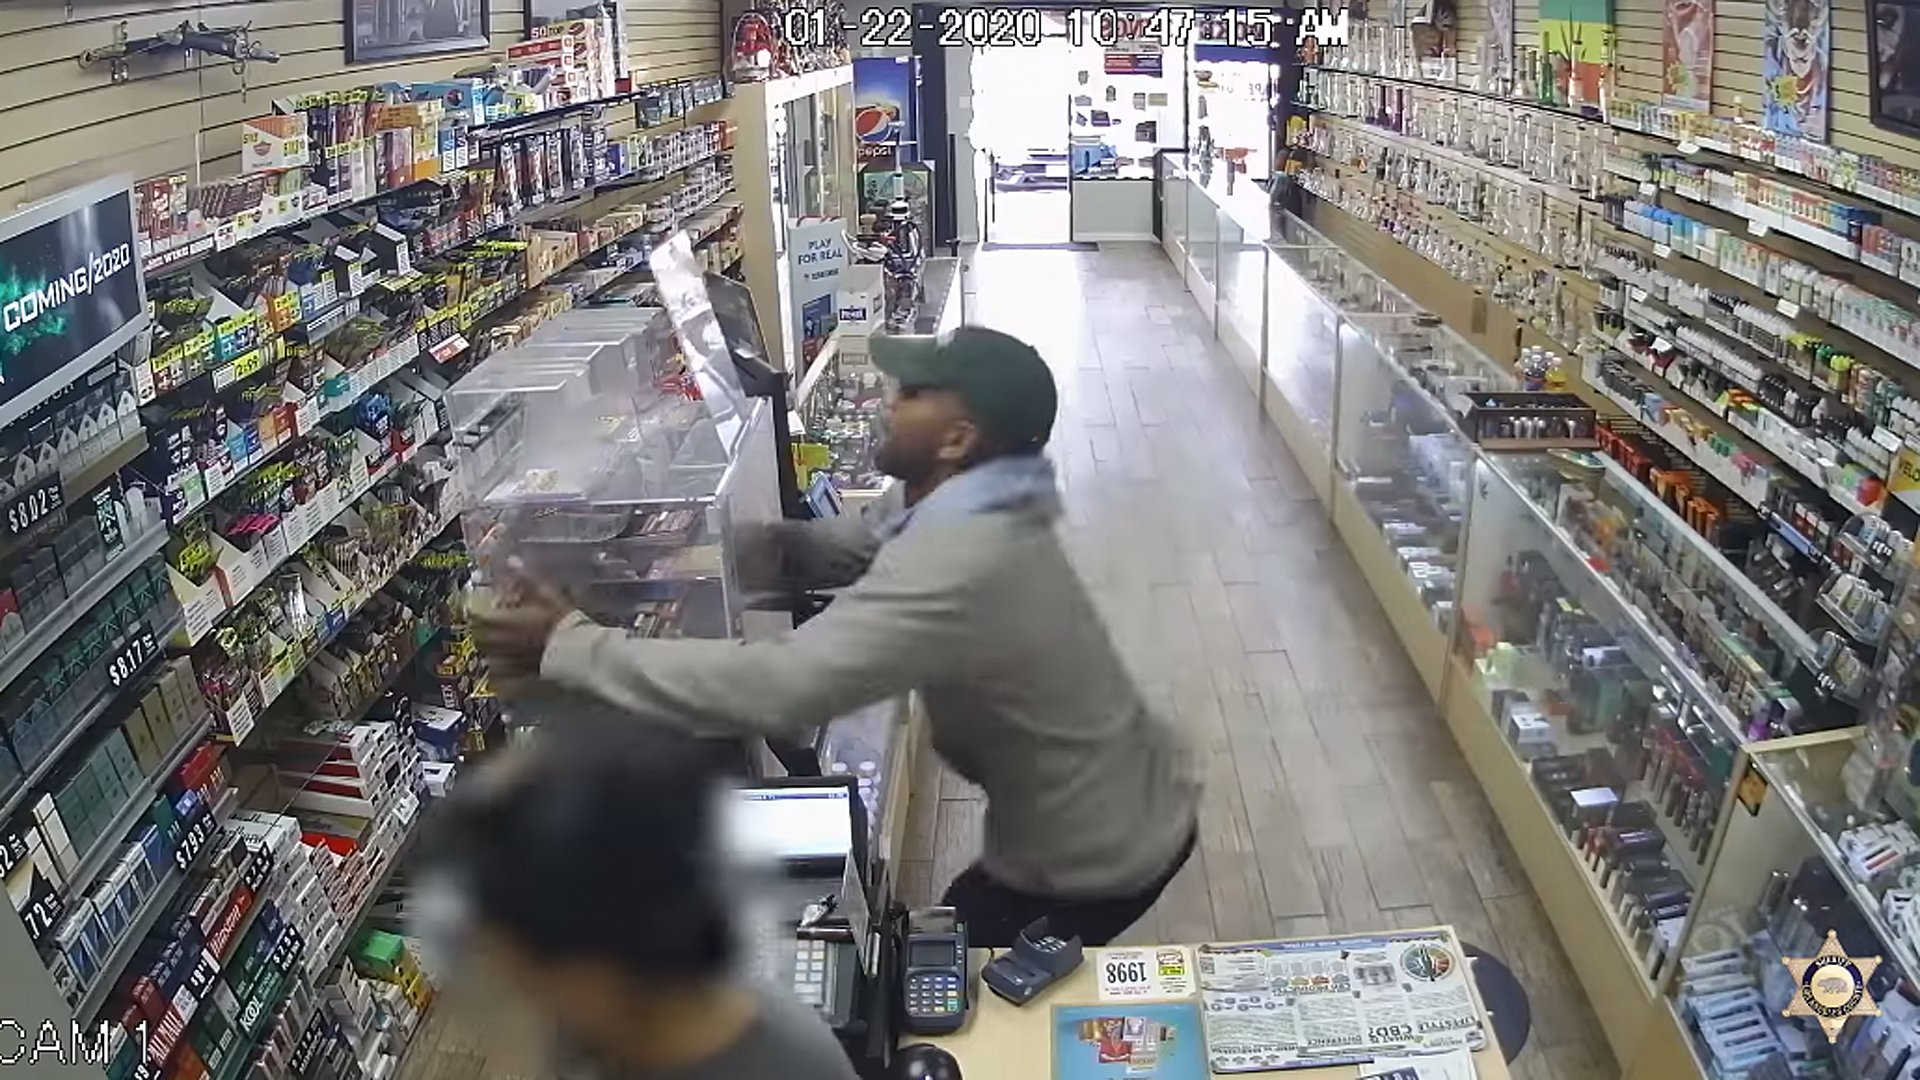 Authorities are still searching for a man who stole two lottery ticket displays in the San Dimas area in January. (Credit: Los Angeles County Sheriff's Department)